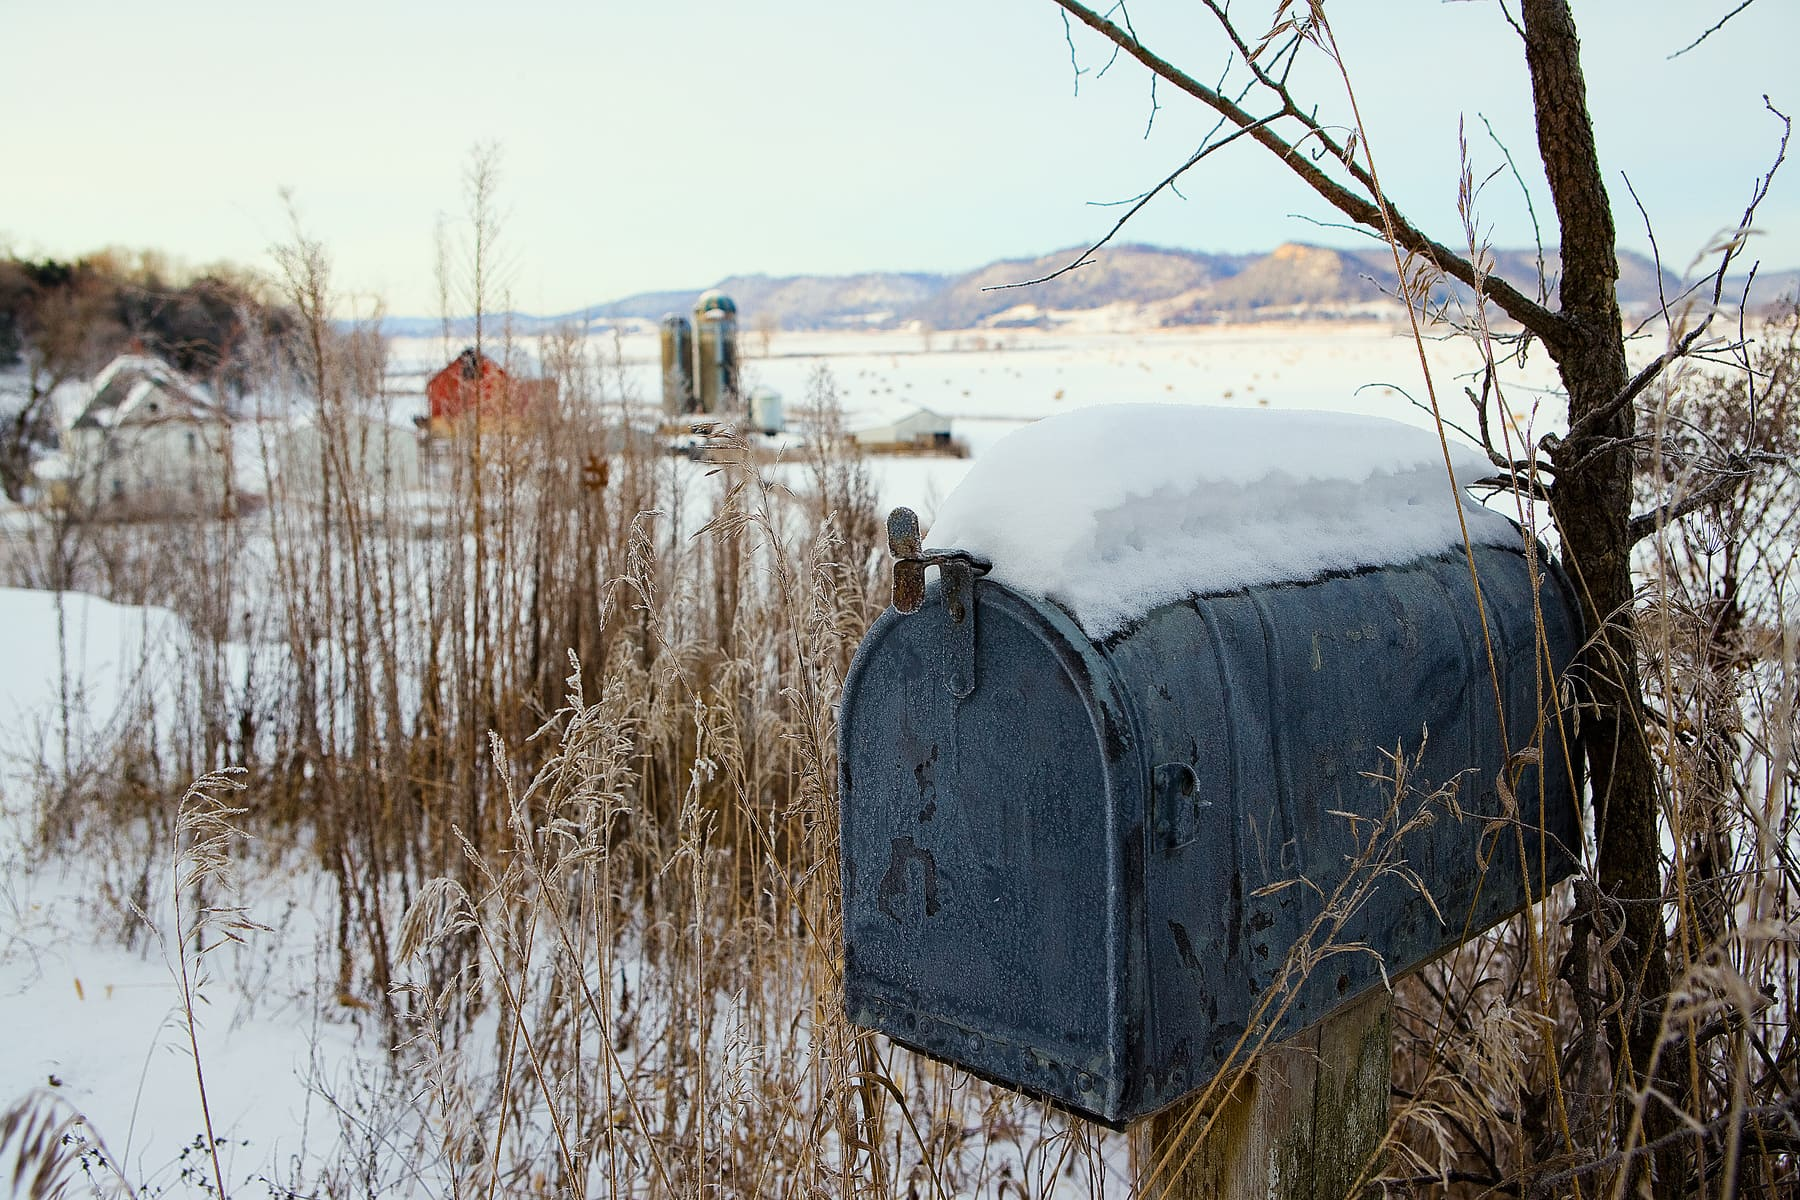 Mailbox in WInter